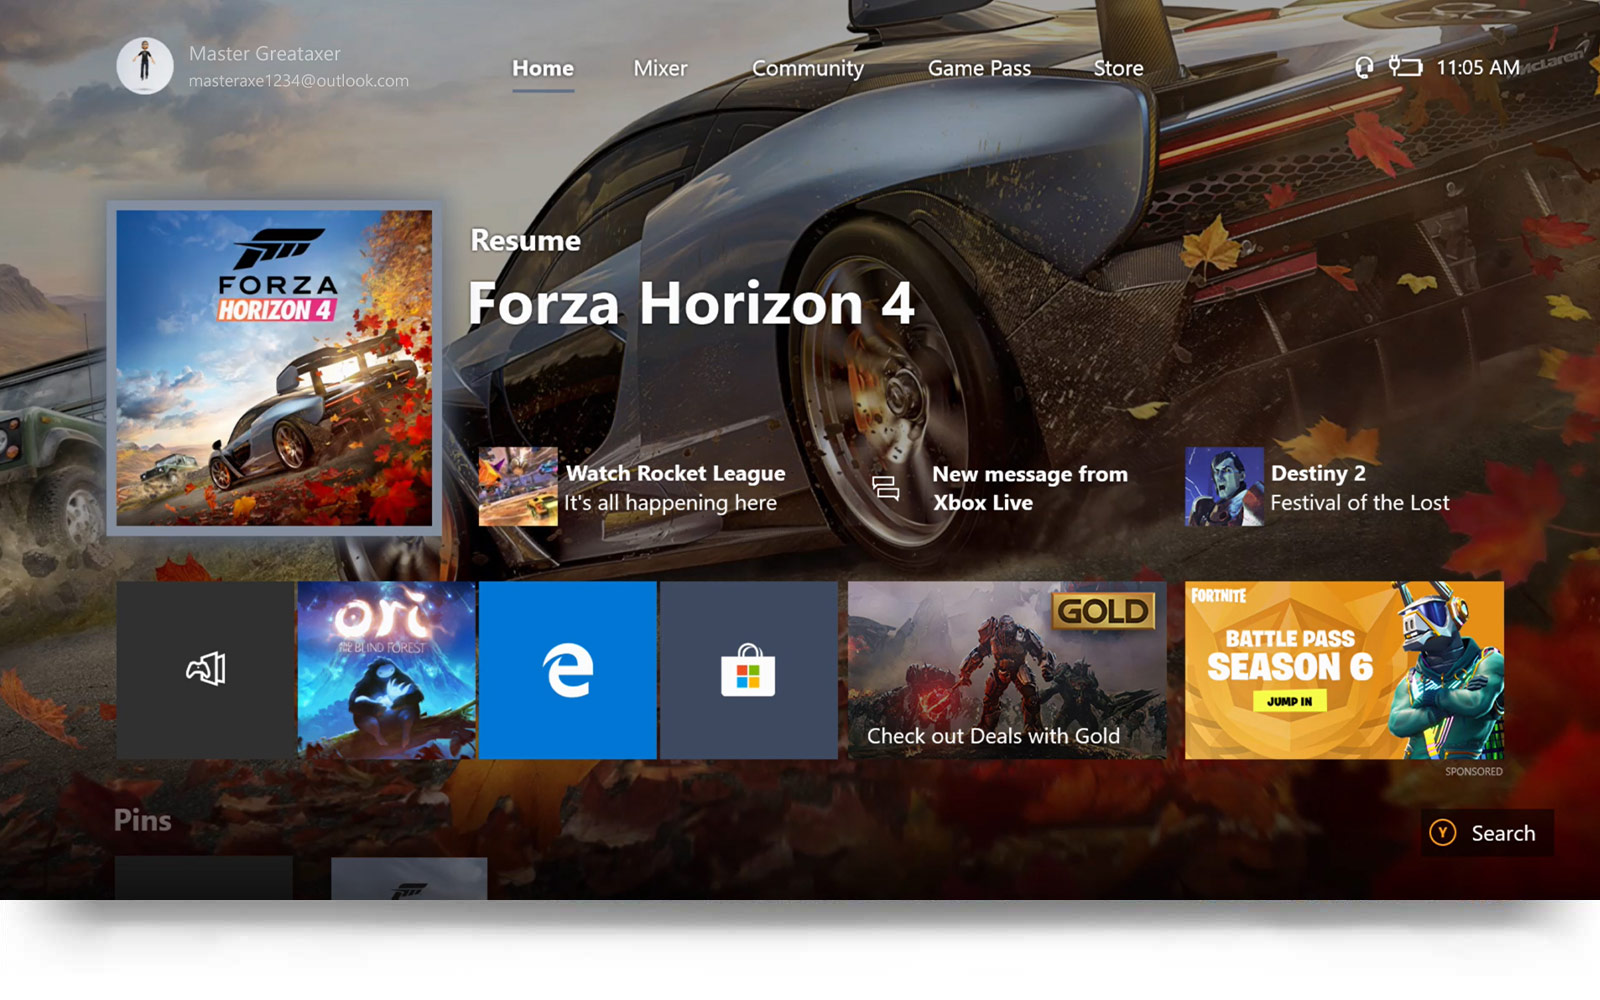 New Home Screen for the Xbox Dashboard showing Forza Horizon 4